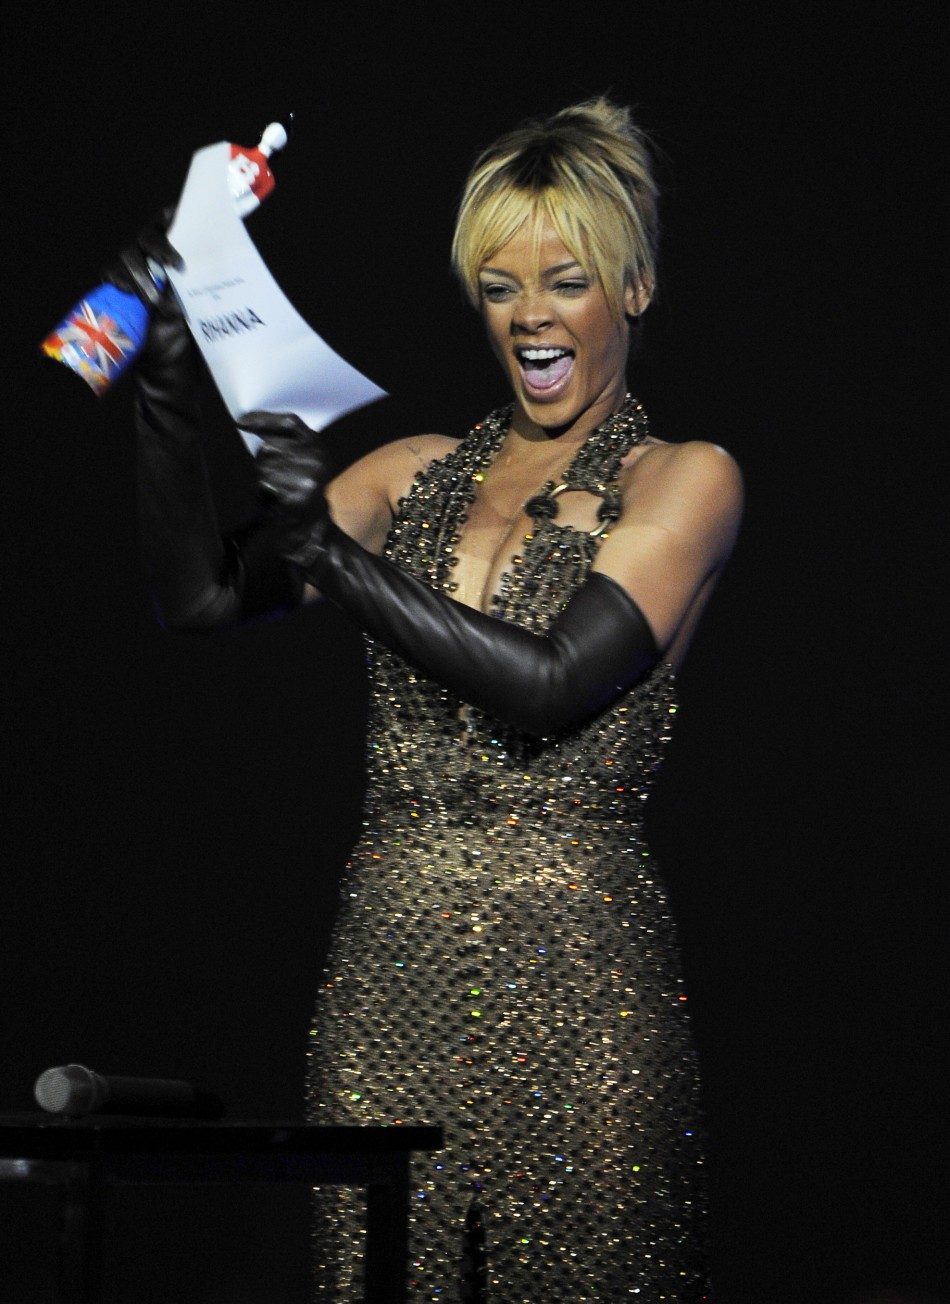 Rihanna reacts after being awarded best international female artist during the BRIT Music Awards at the O2 Arena in London